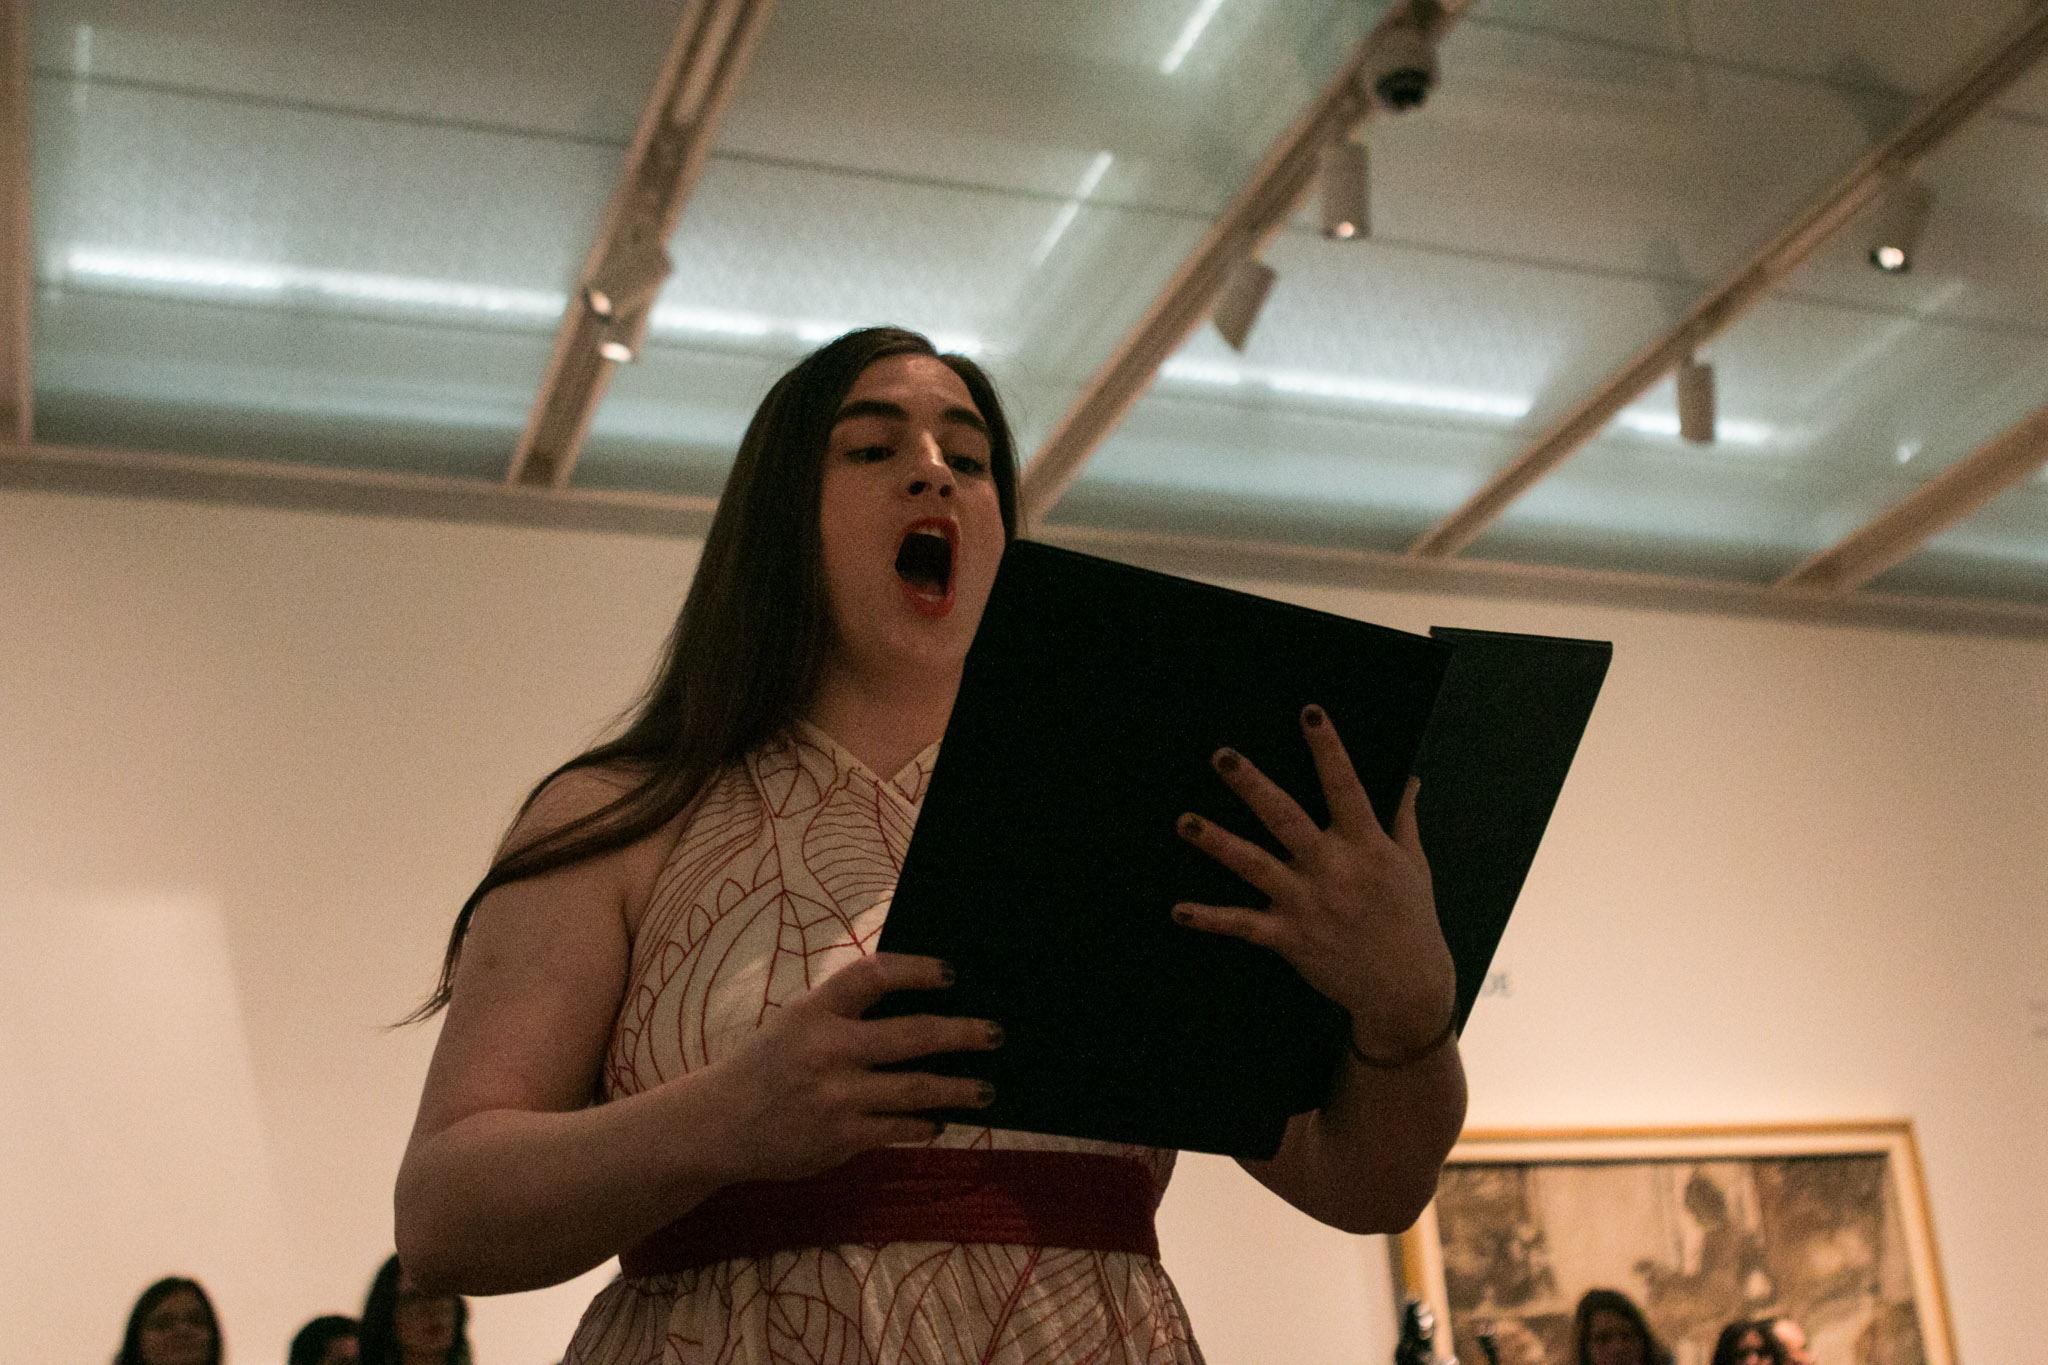 Kelly Merka Nelson performs a solo during From Those Who Follow The Echoes at the McNay Art Museum.